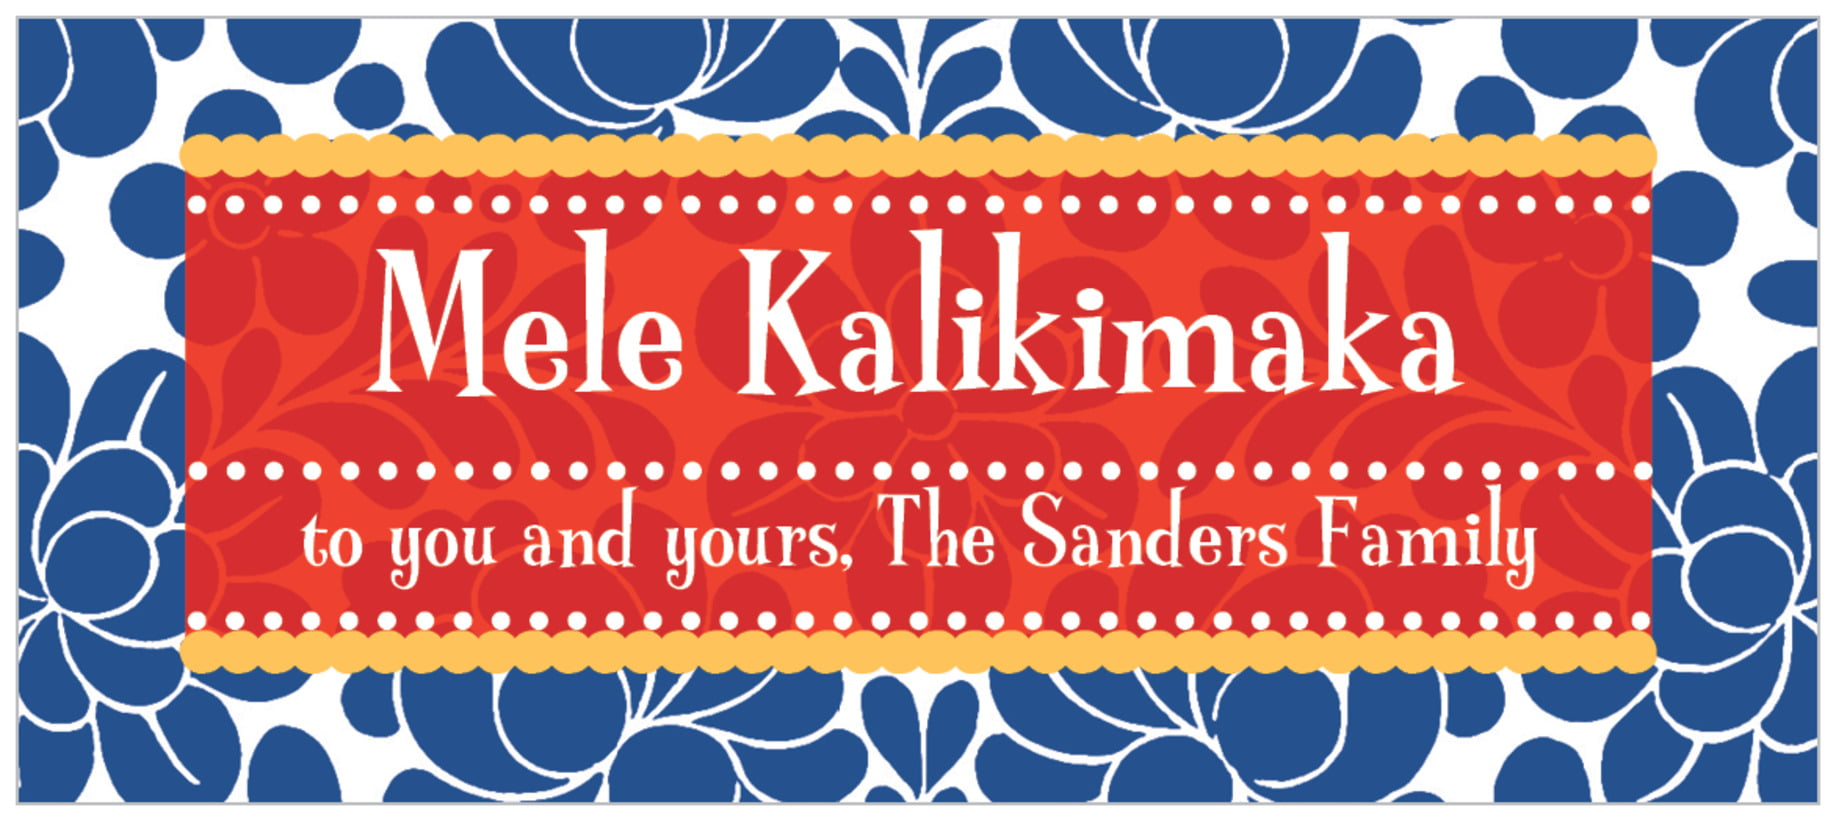 small rectangle food/craft labels - deep blue - mele kalikimaka (set of 24)